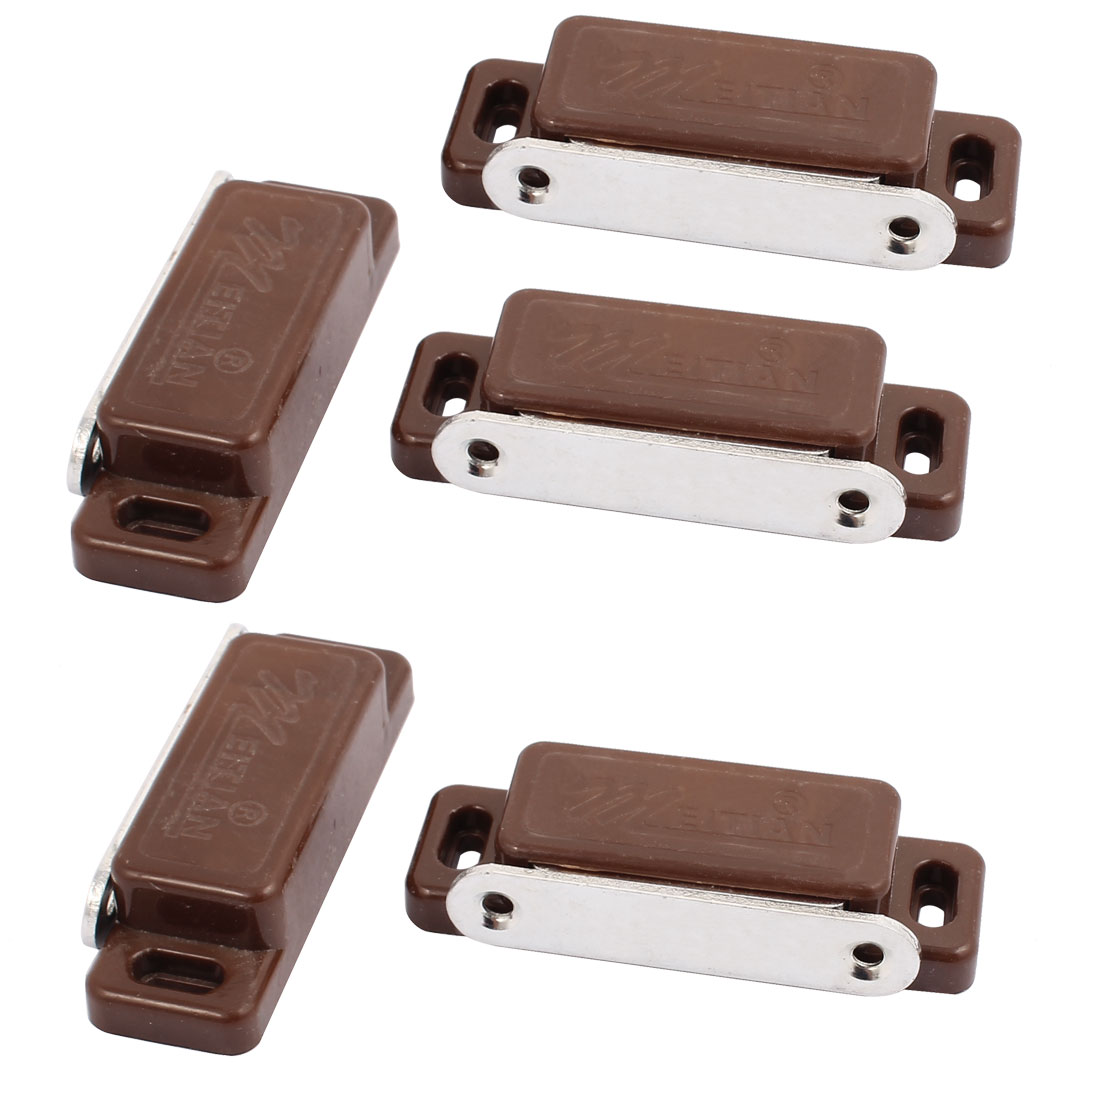 Plastic Single Head Door Magnetic Catch Latch Clip 75 x 26 x 16mm Brown 5pcs